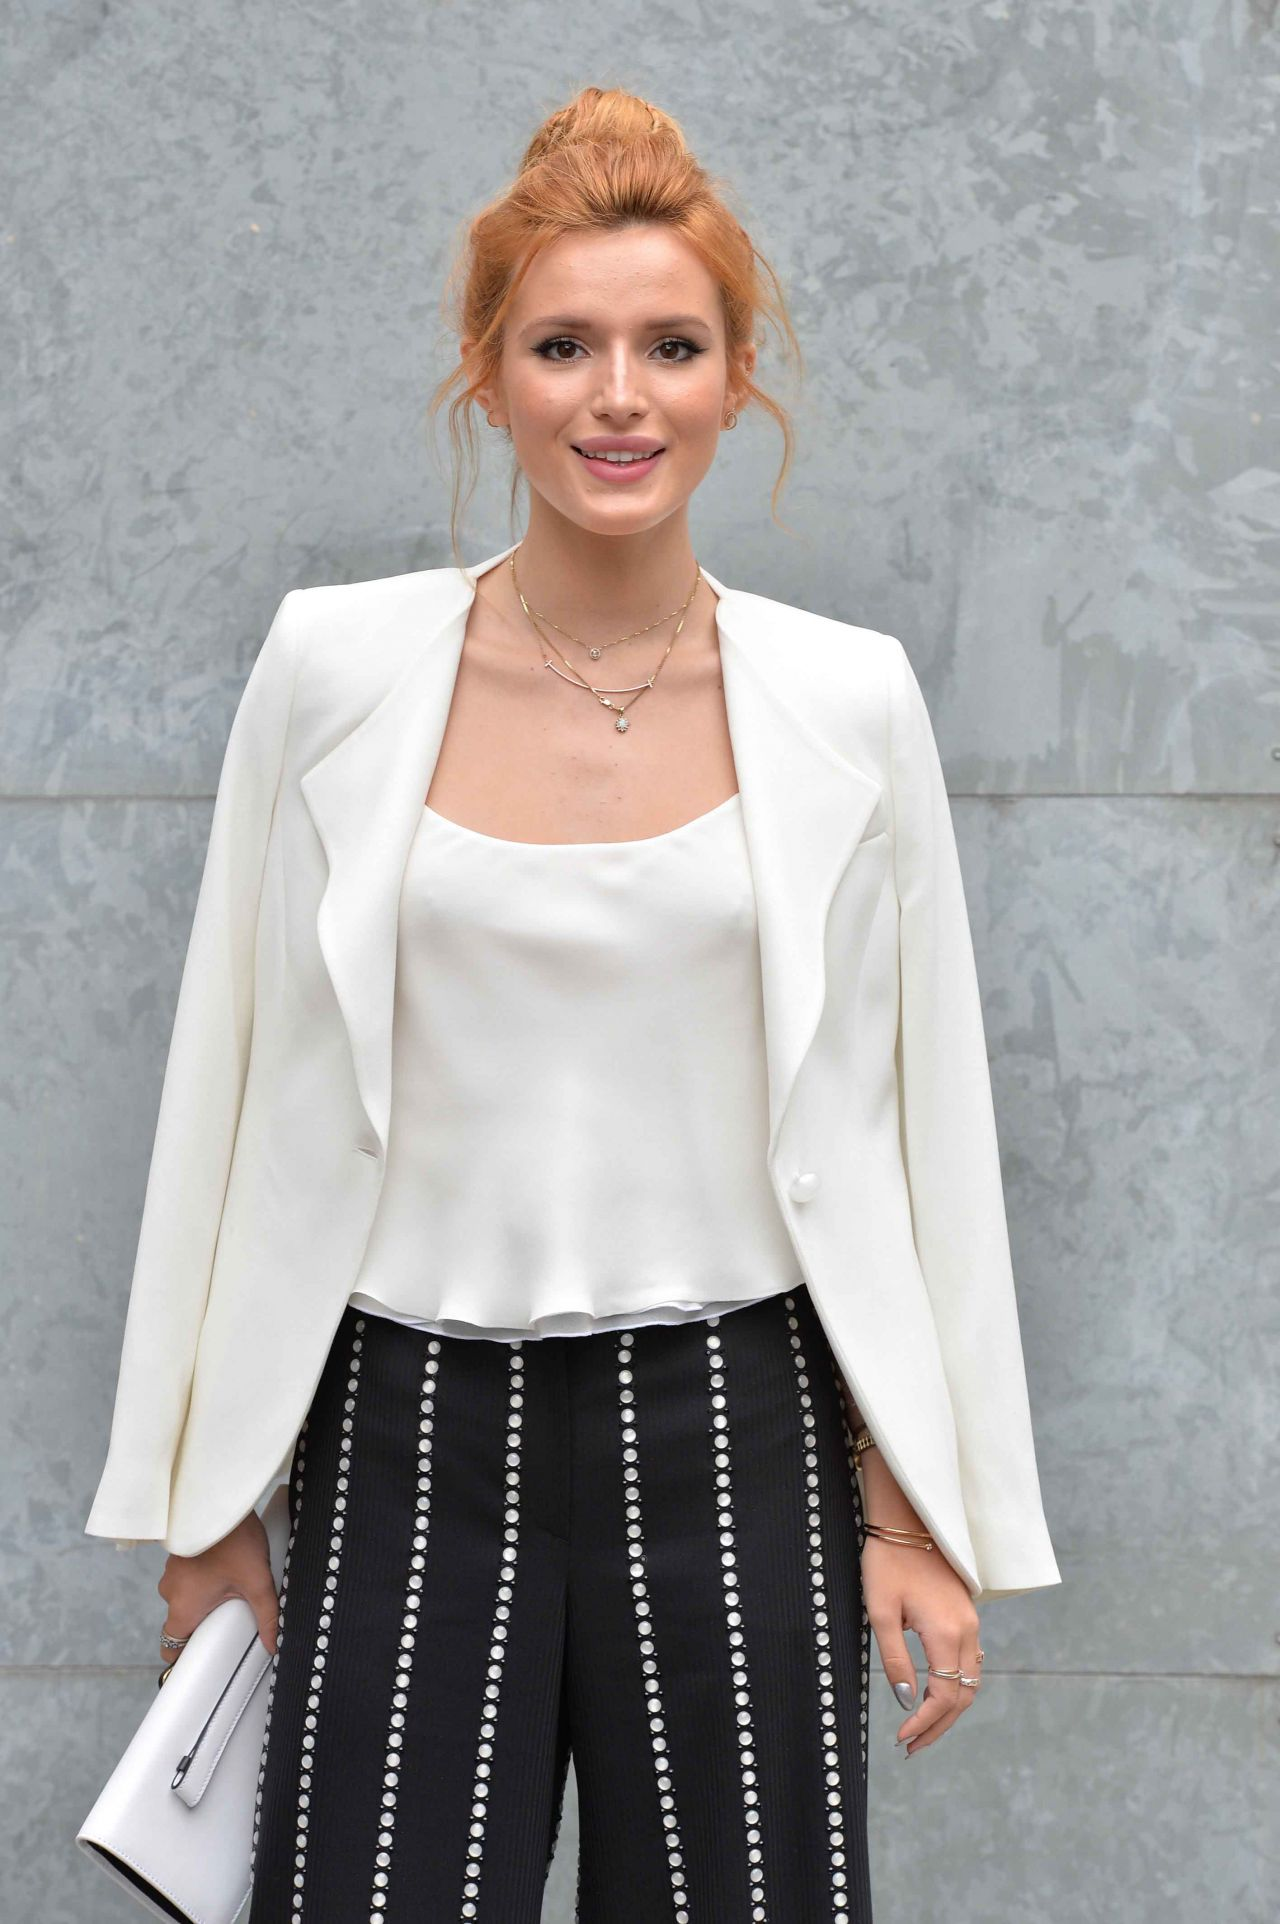 Bella Thorne - Milan Fashion Week - Emporio Armani Fashio Show in Milan, Italy - Sept. 2014